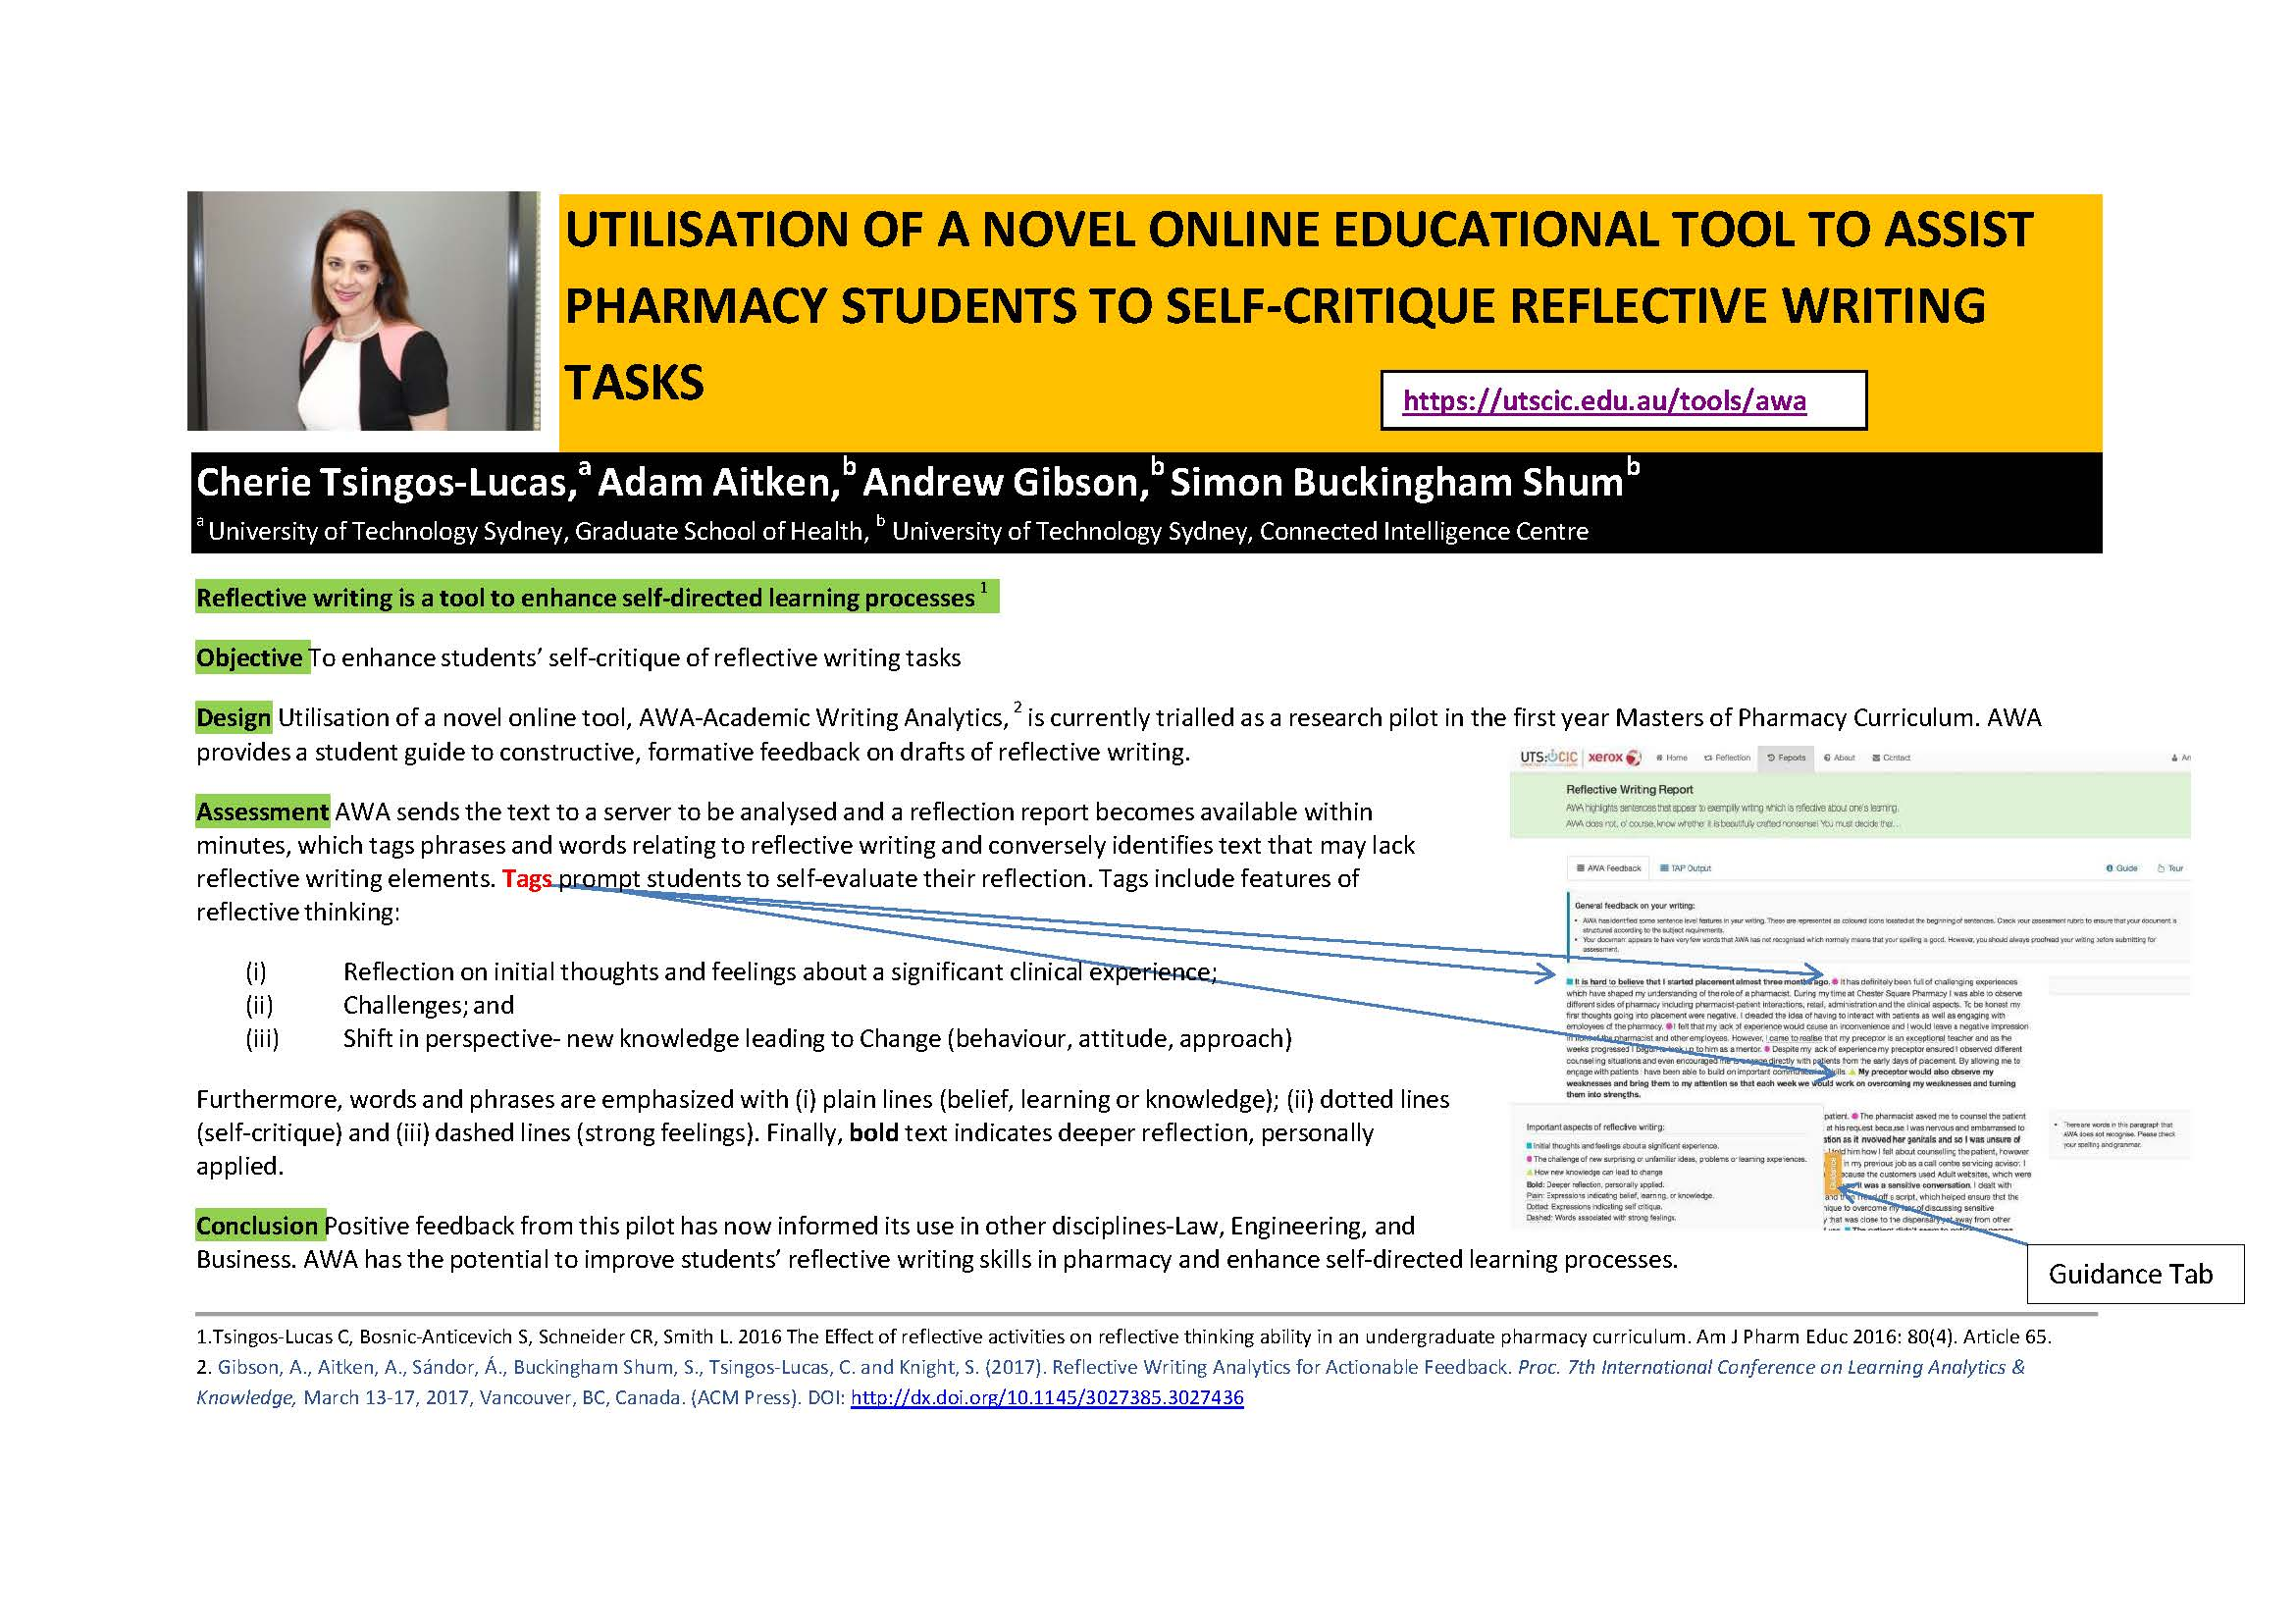 The poster the team won the award for, titled 'Utilisation of a novel online educational tool to assist pharmacy students to self-critique reflective writing tasks'.